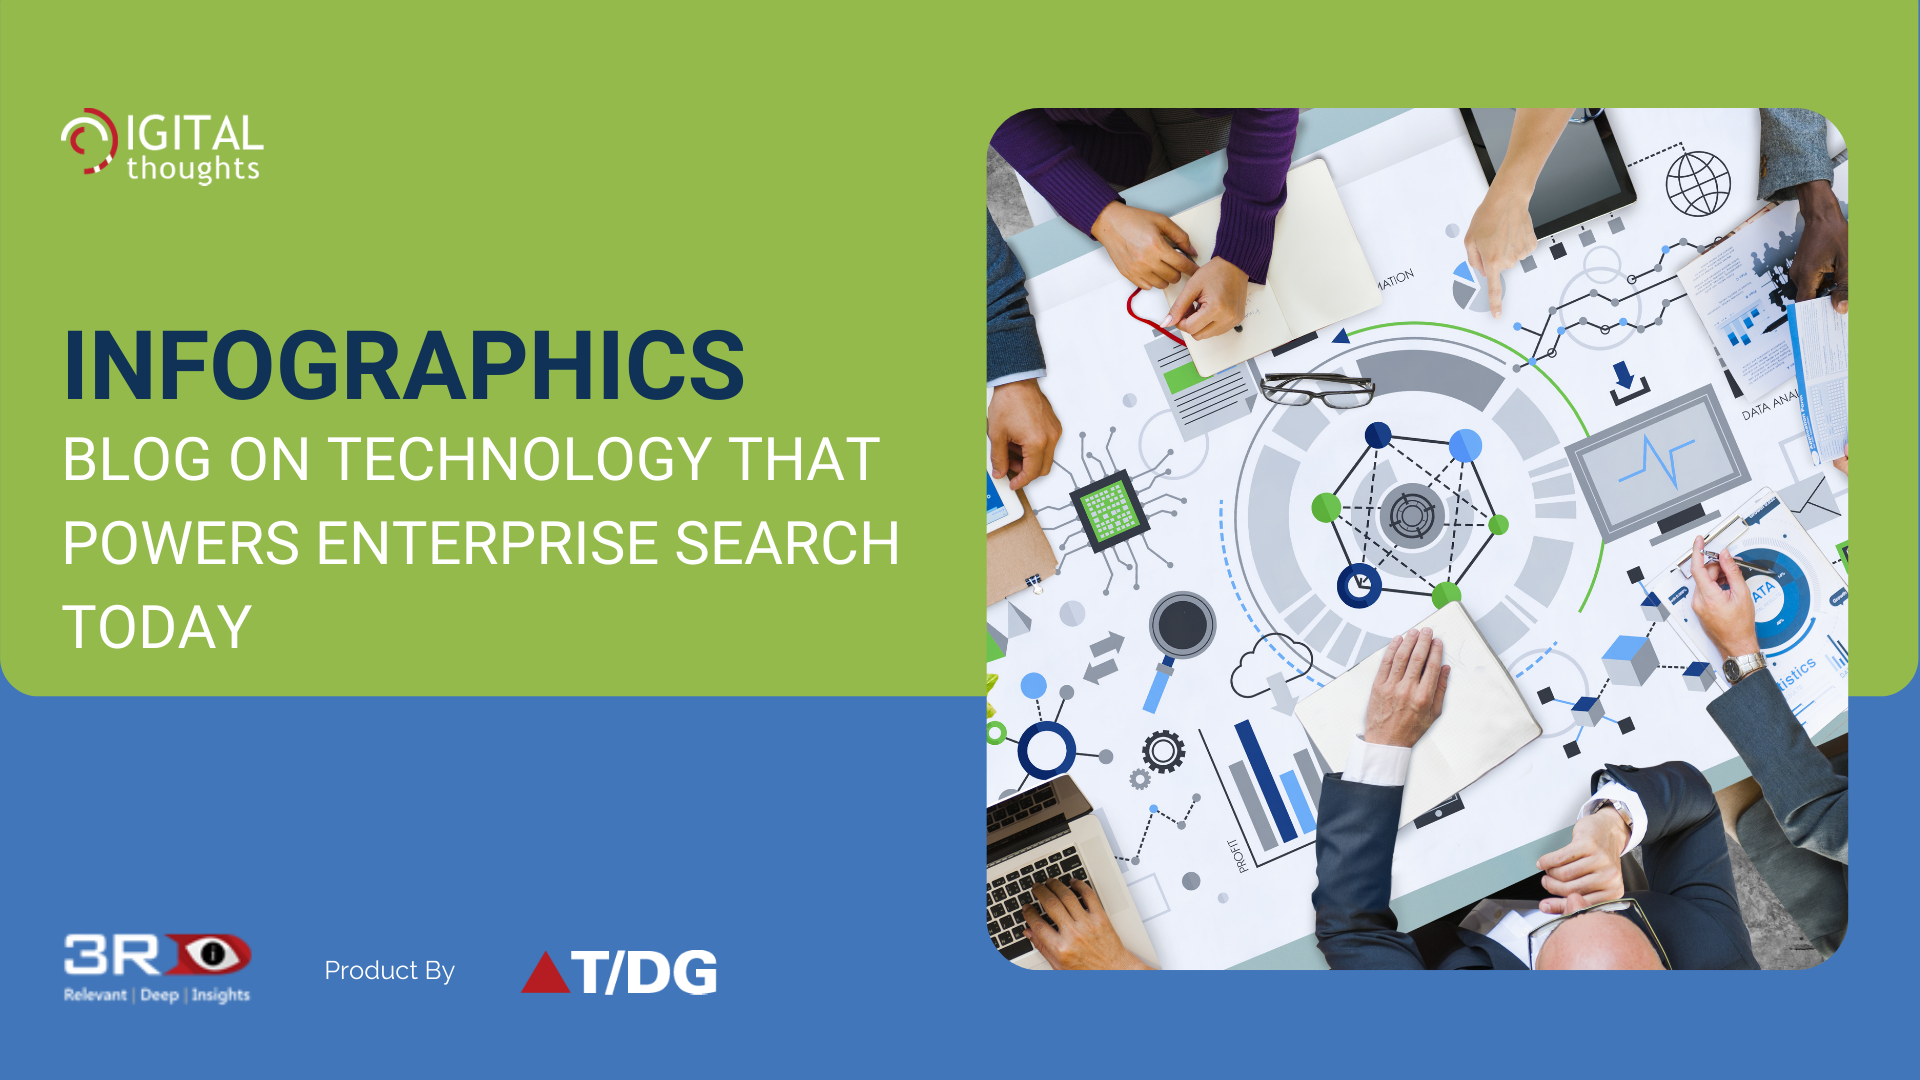 Infographics Blog on Technologies that Power Enterprise Search Tools Today